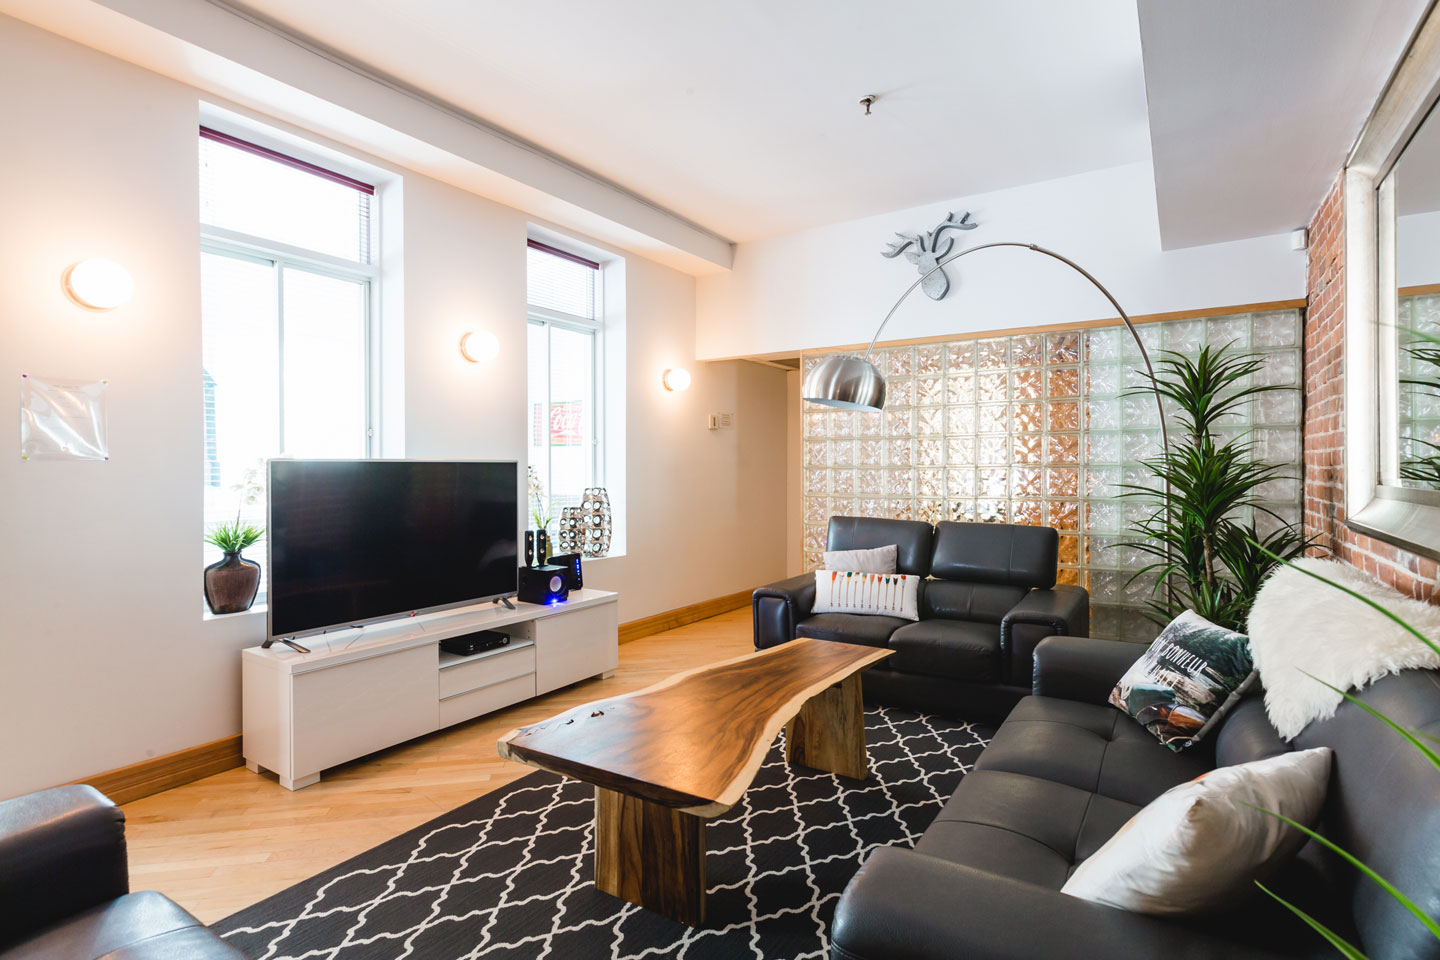 City chalet: living room with HD TV, Netflix and free WiFi